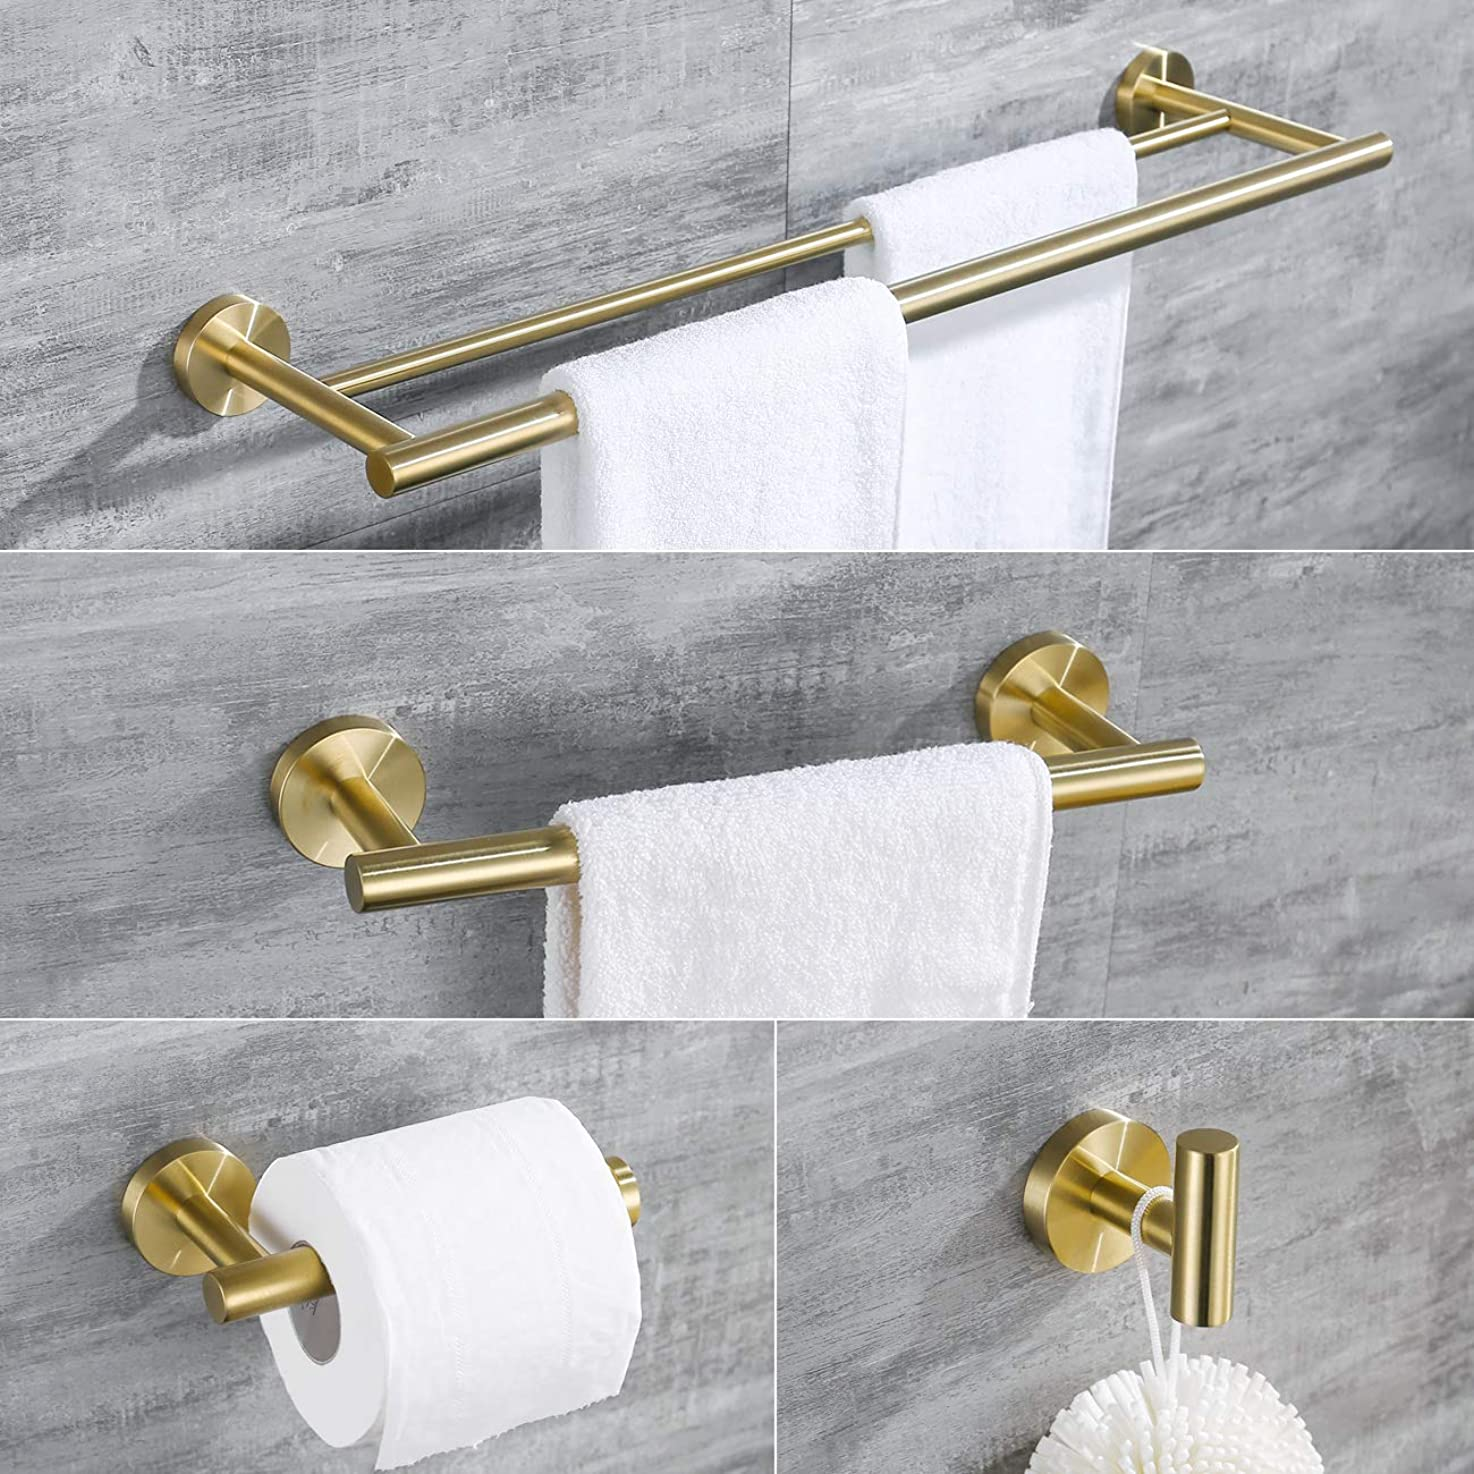 Hoooh 4-Piece Bathroom Accessories Set Stainless Steel Wall Mount Brushed Gold - Includes Double Towel Bar, Hand Towel Rack, Toilet Paper Holder, Robe Hooks, BS100S4-BG zgubhfecnndml2